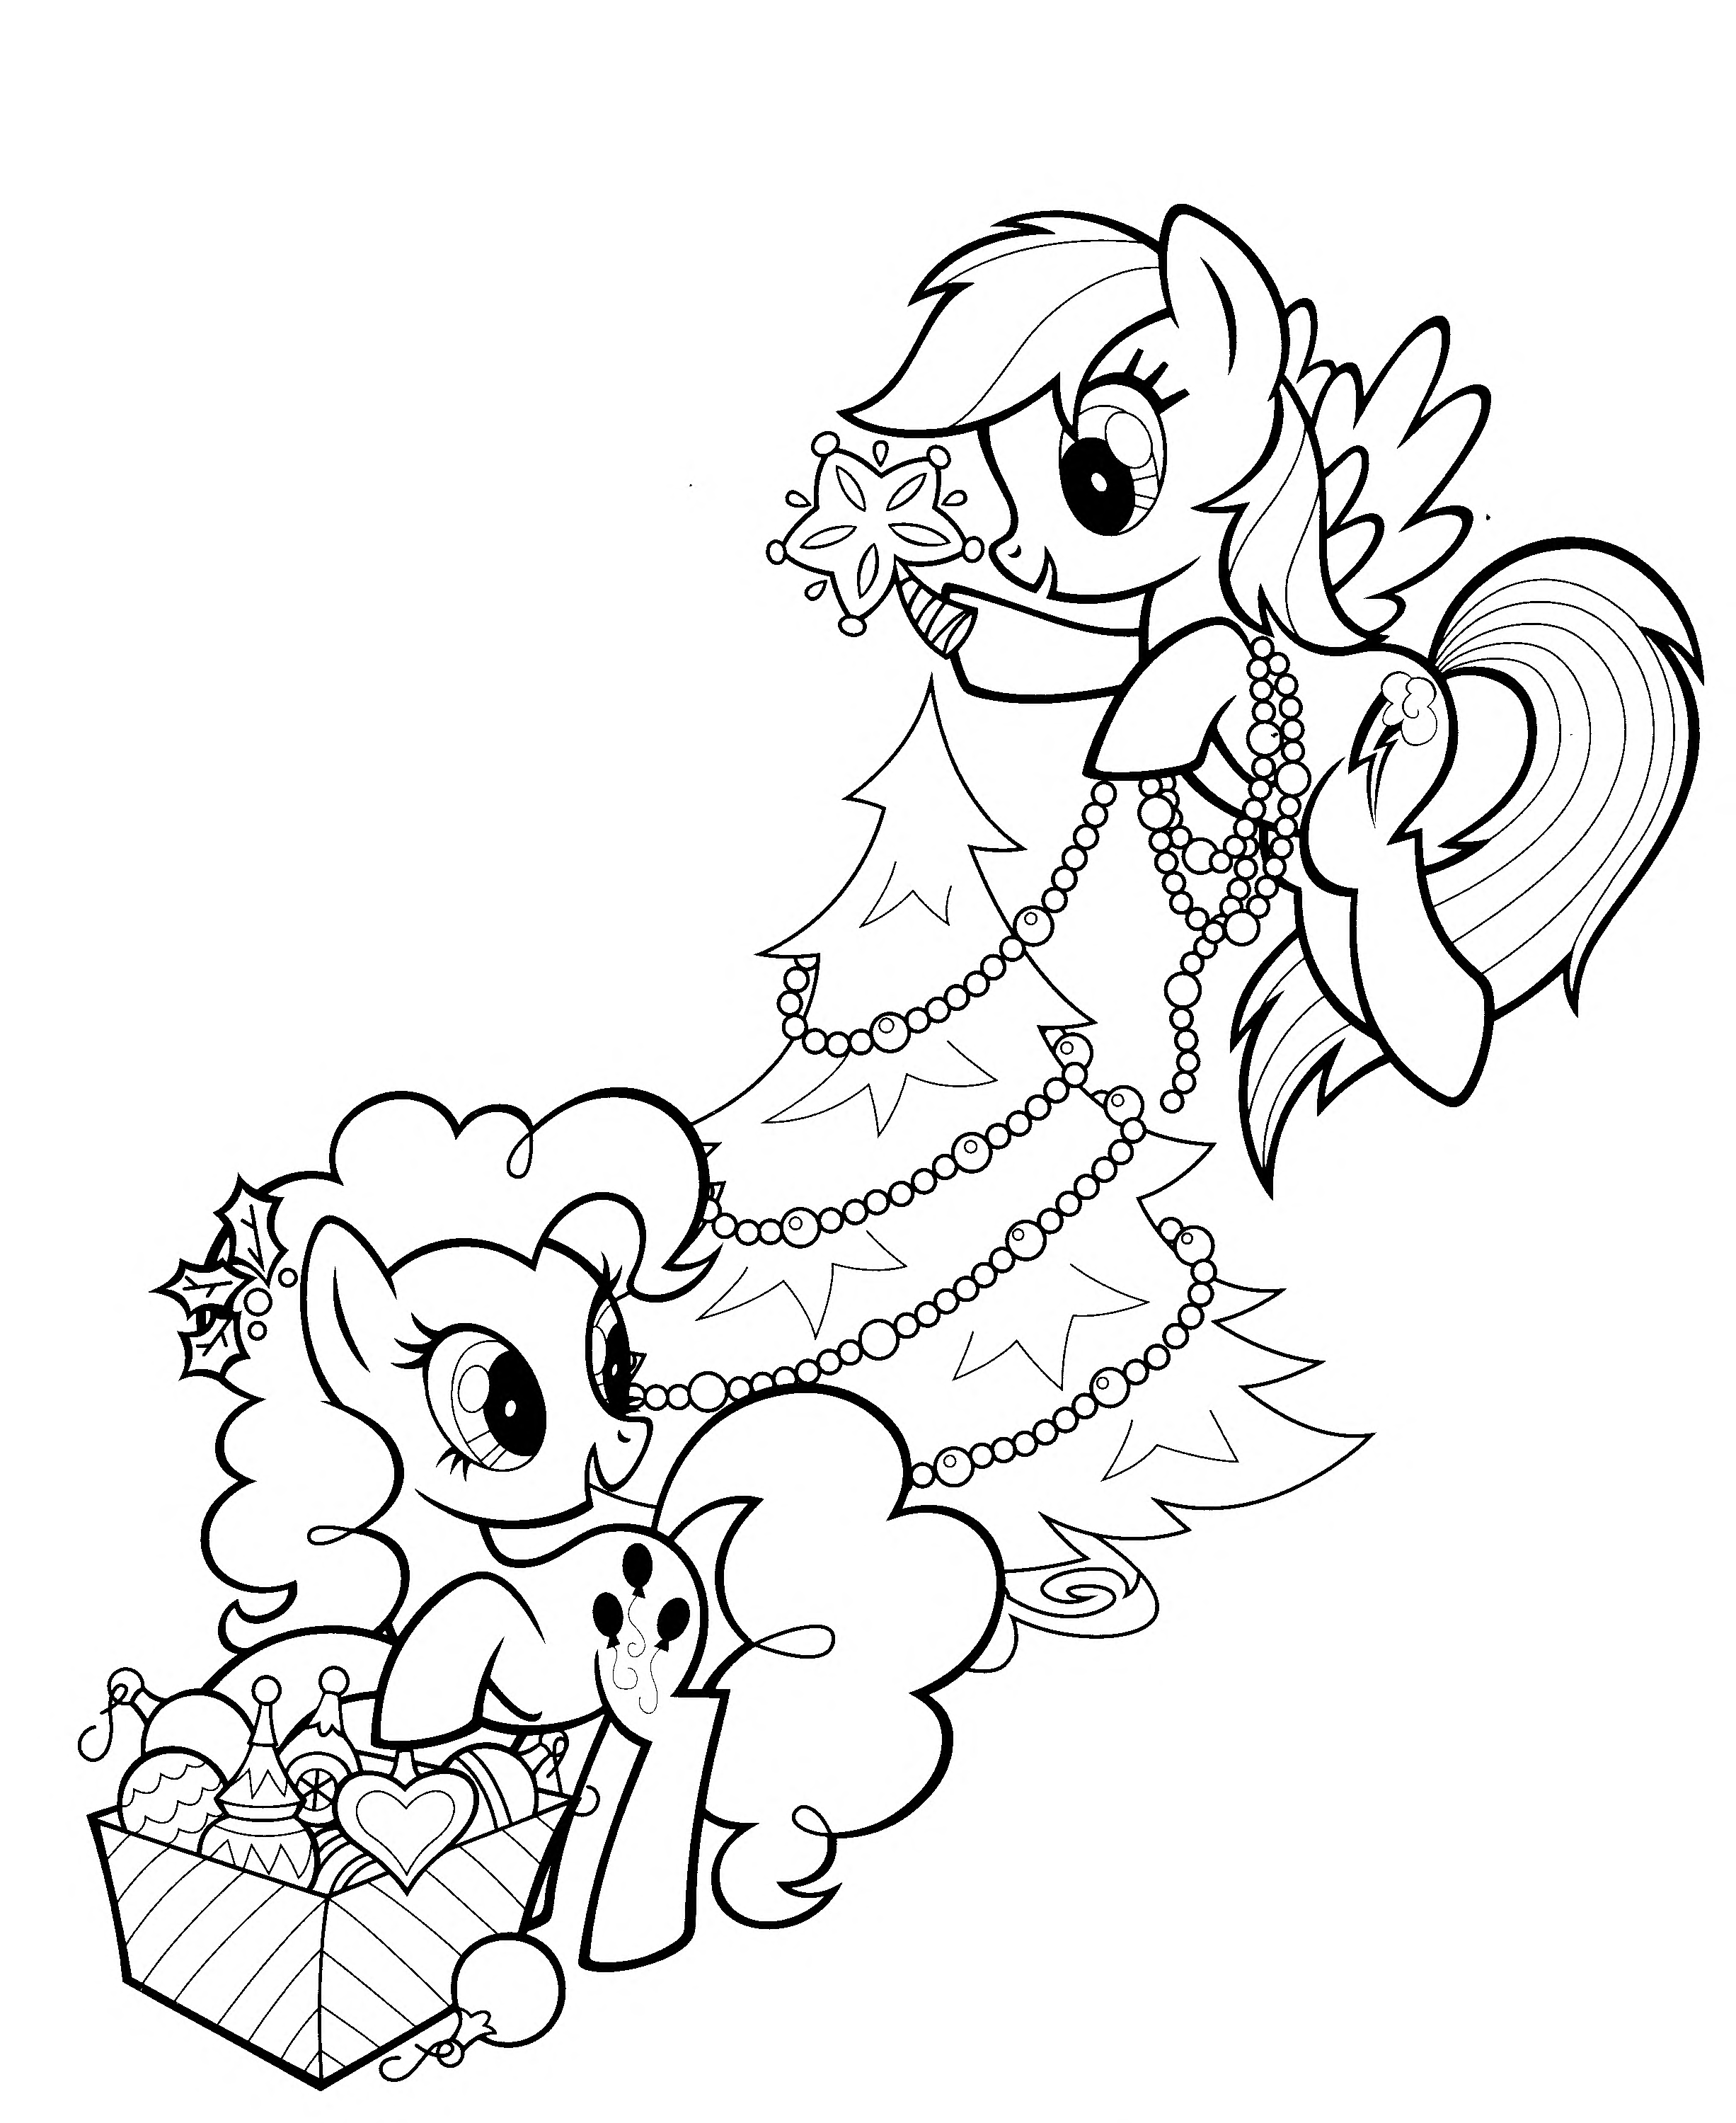 Pin By Alouette On Sailor Moon My Little Pony Coloring Horse Coloring Pages Christmas Coloring Pages